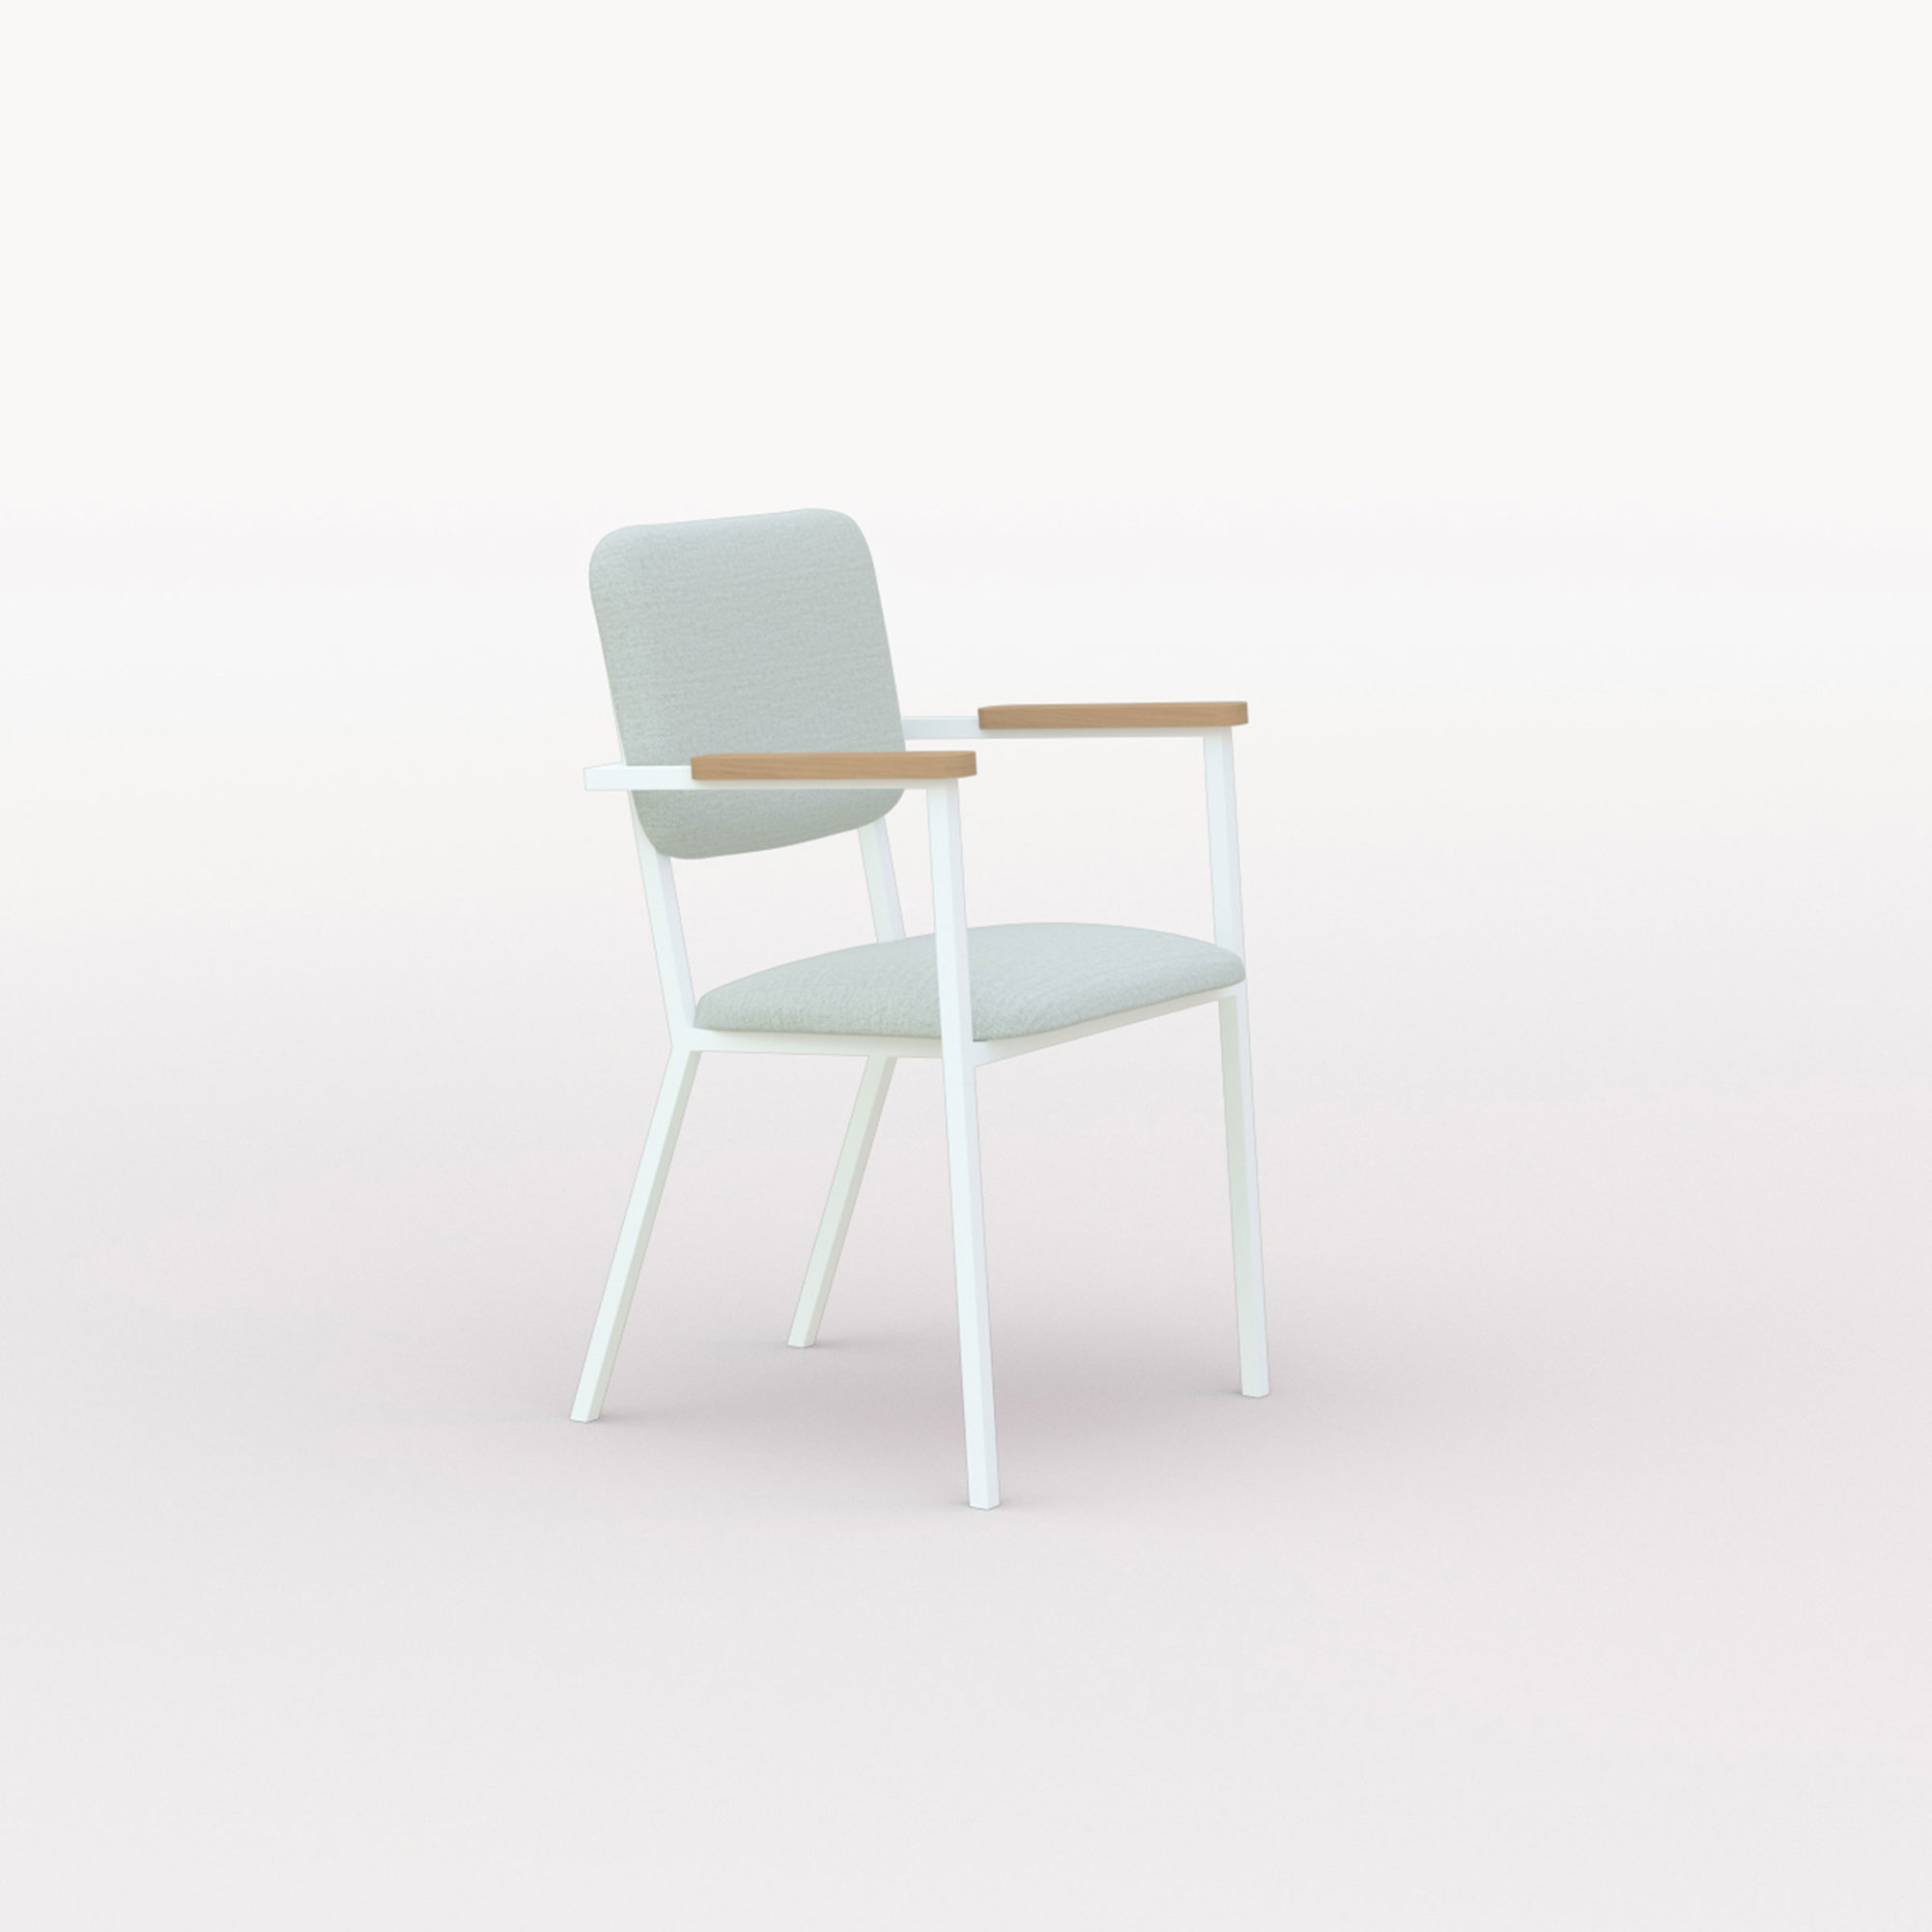 Design eetkamerstoel | Co Chair with armrest hallingdal65 110 | Studio HENK | Listing_image